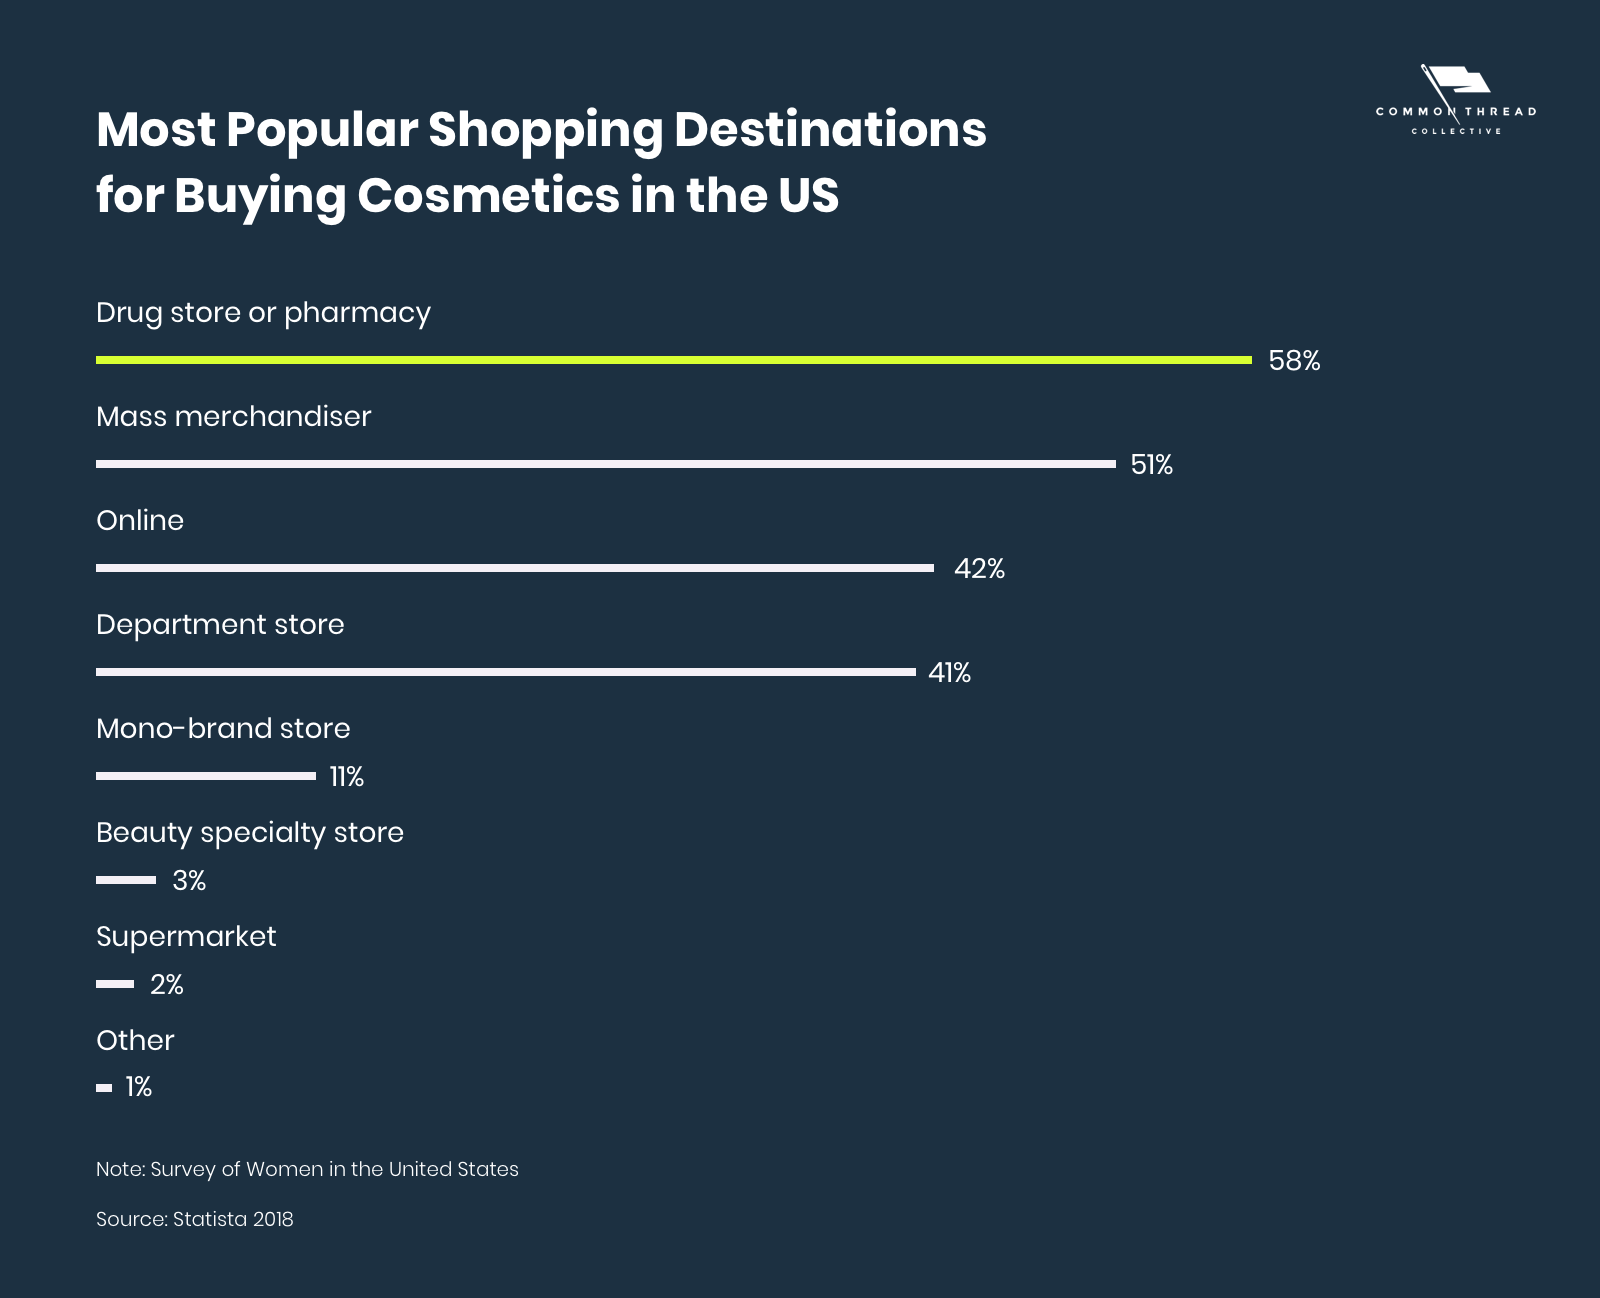 Most Popular Shopping Destinations for Buying Cosmetics in the US